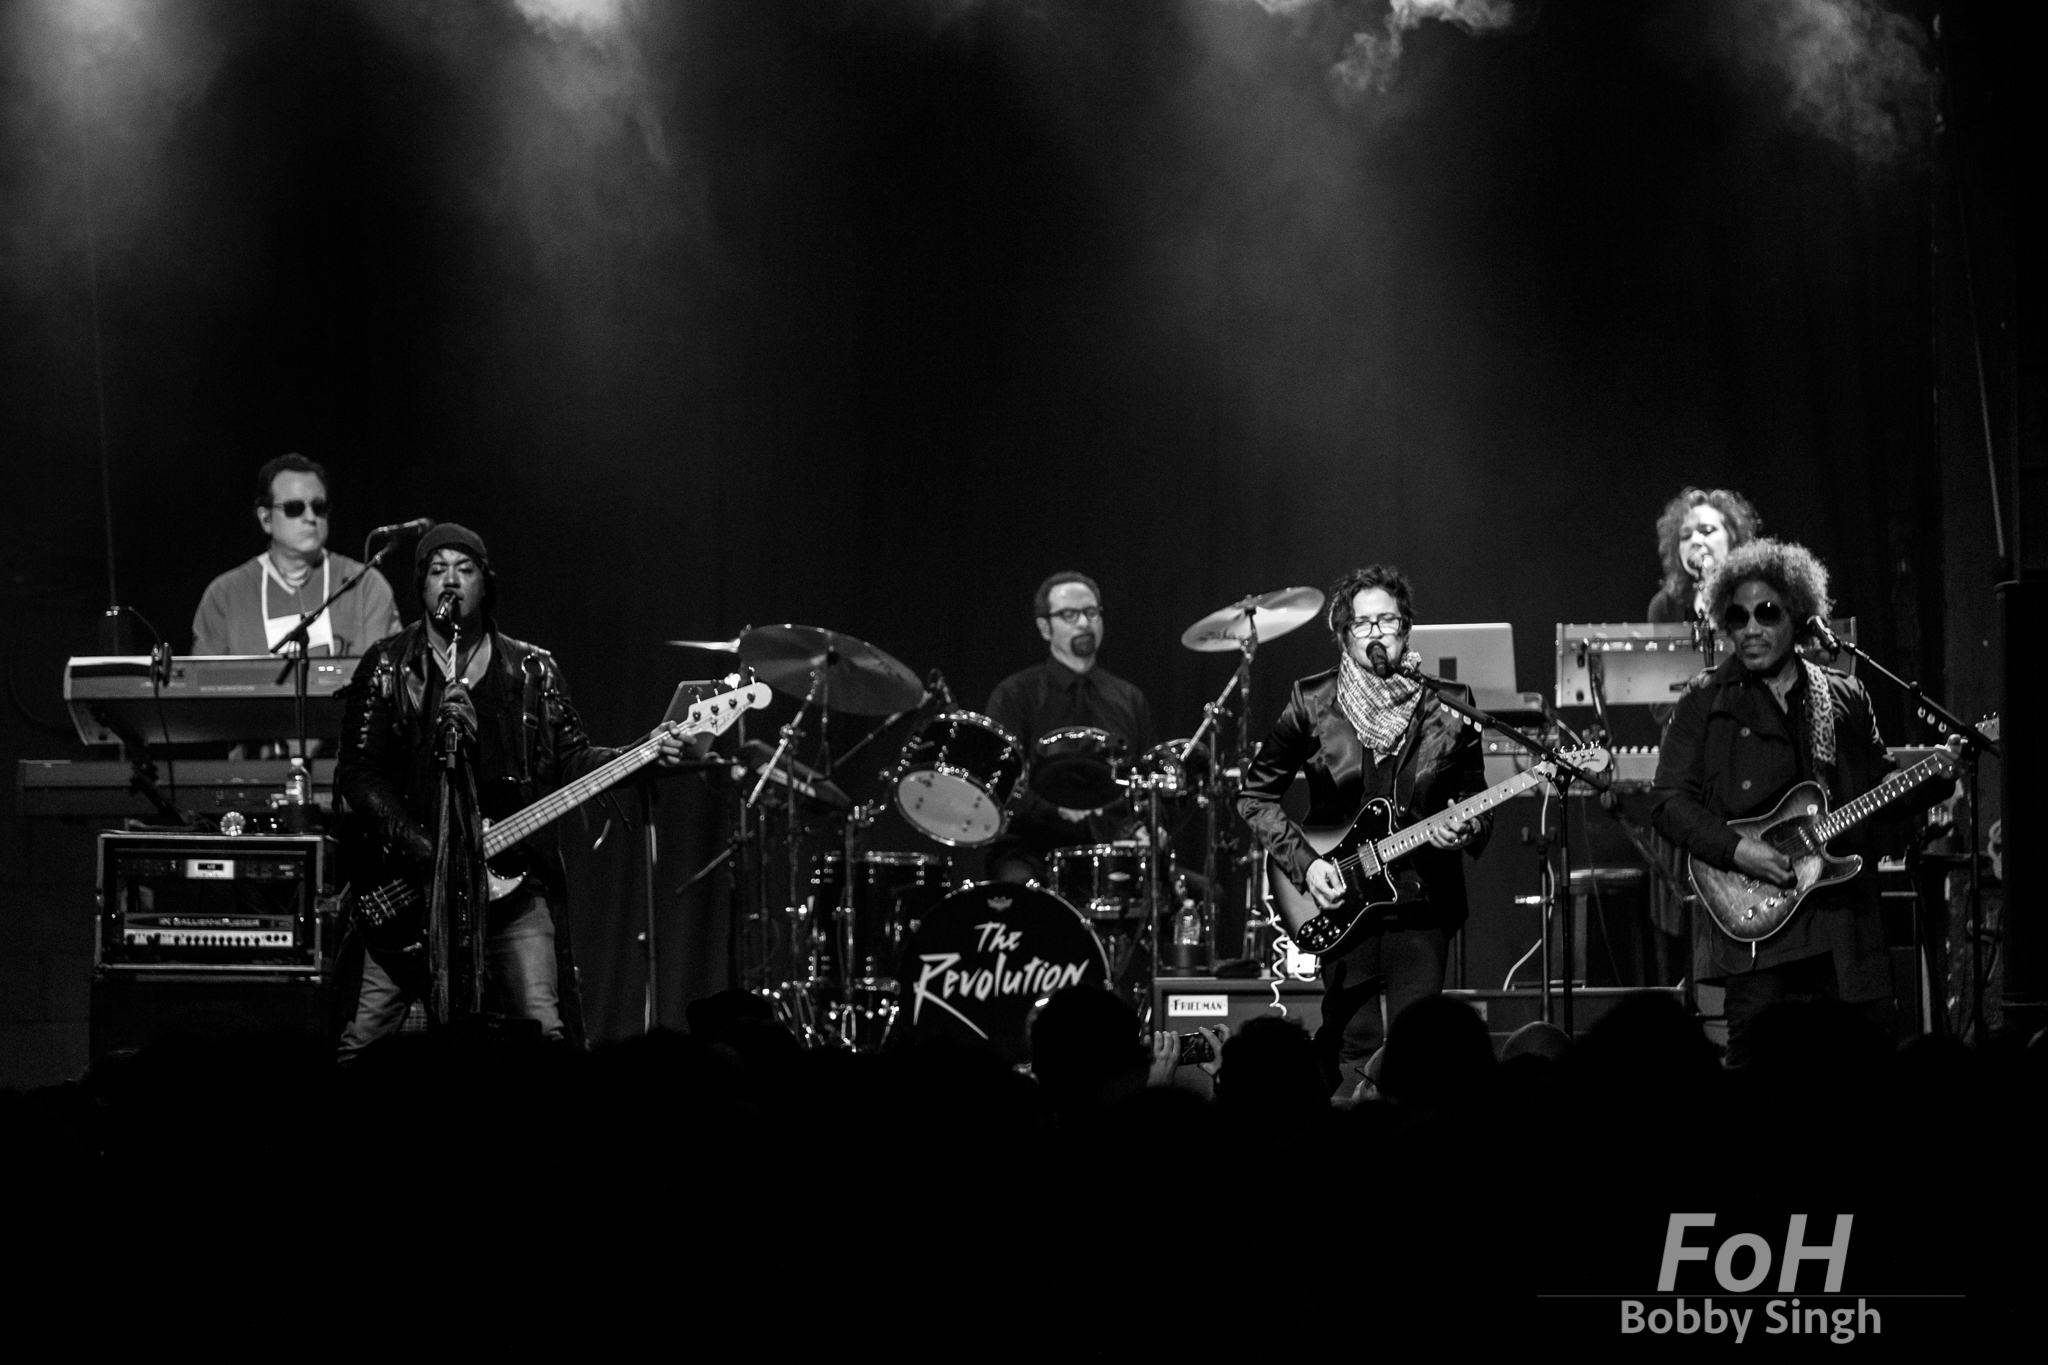 The Revolution, Prince's 80's backing band perform at The Phoenix Concert Theatre in Toronto, Canada